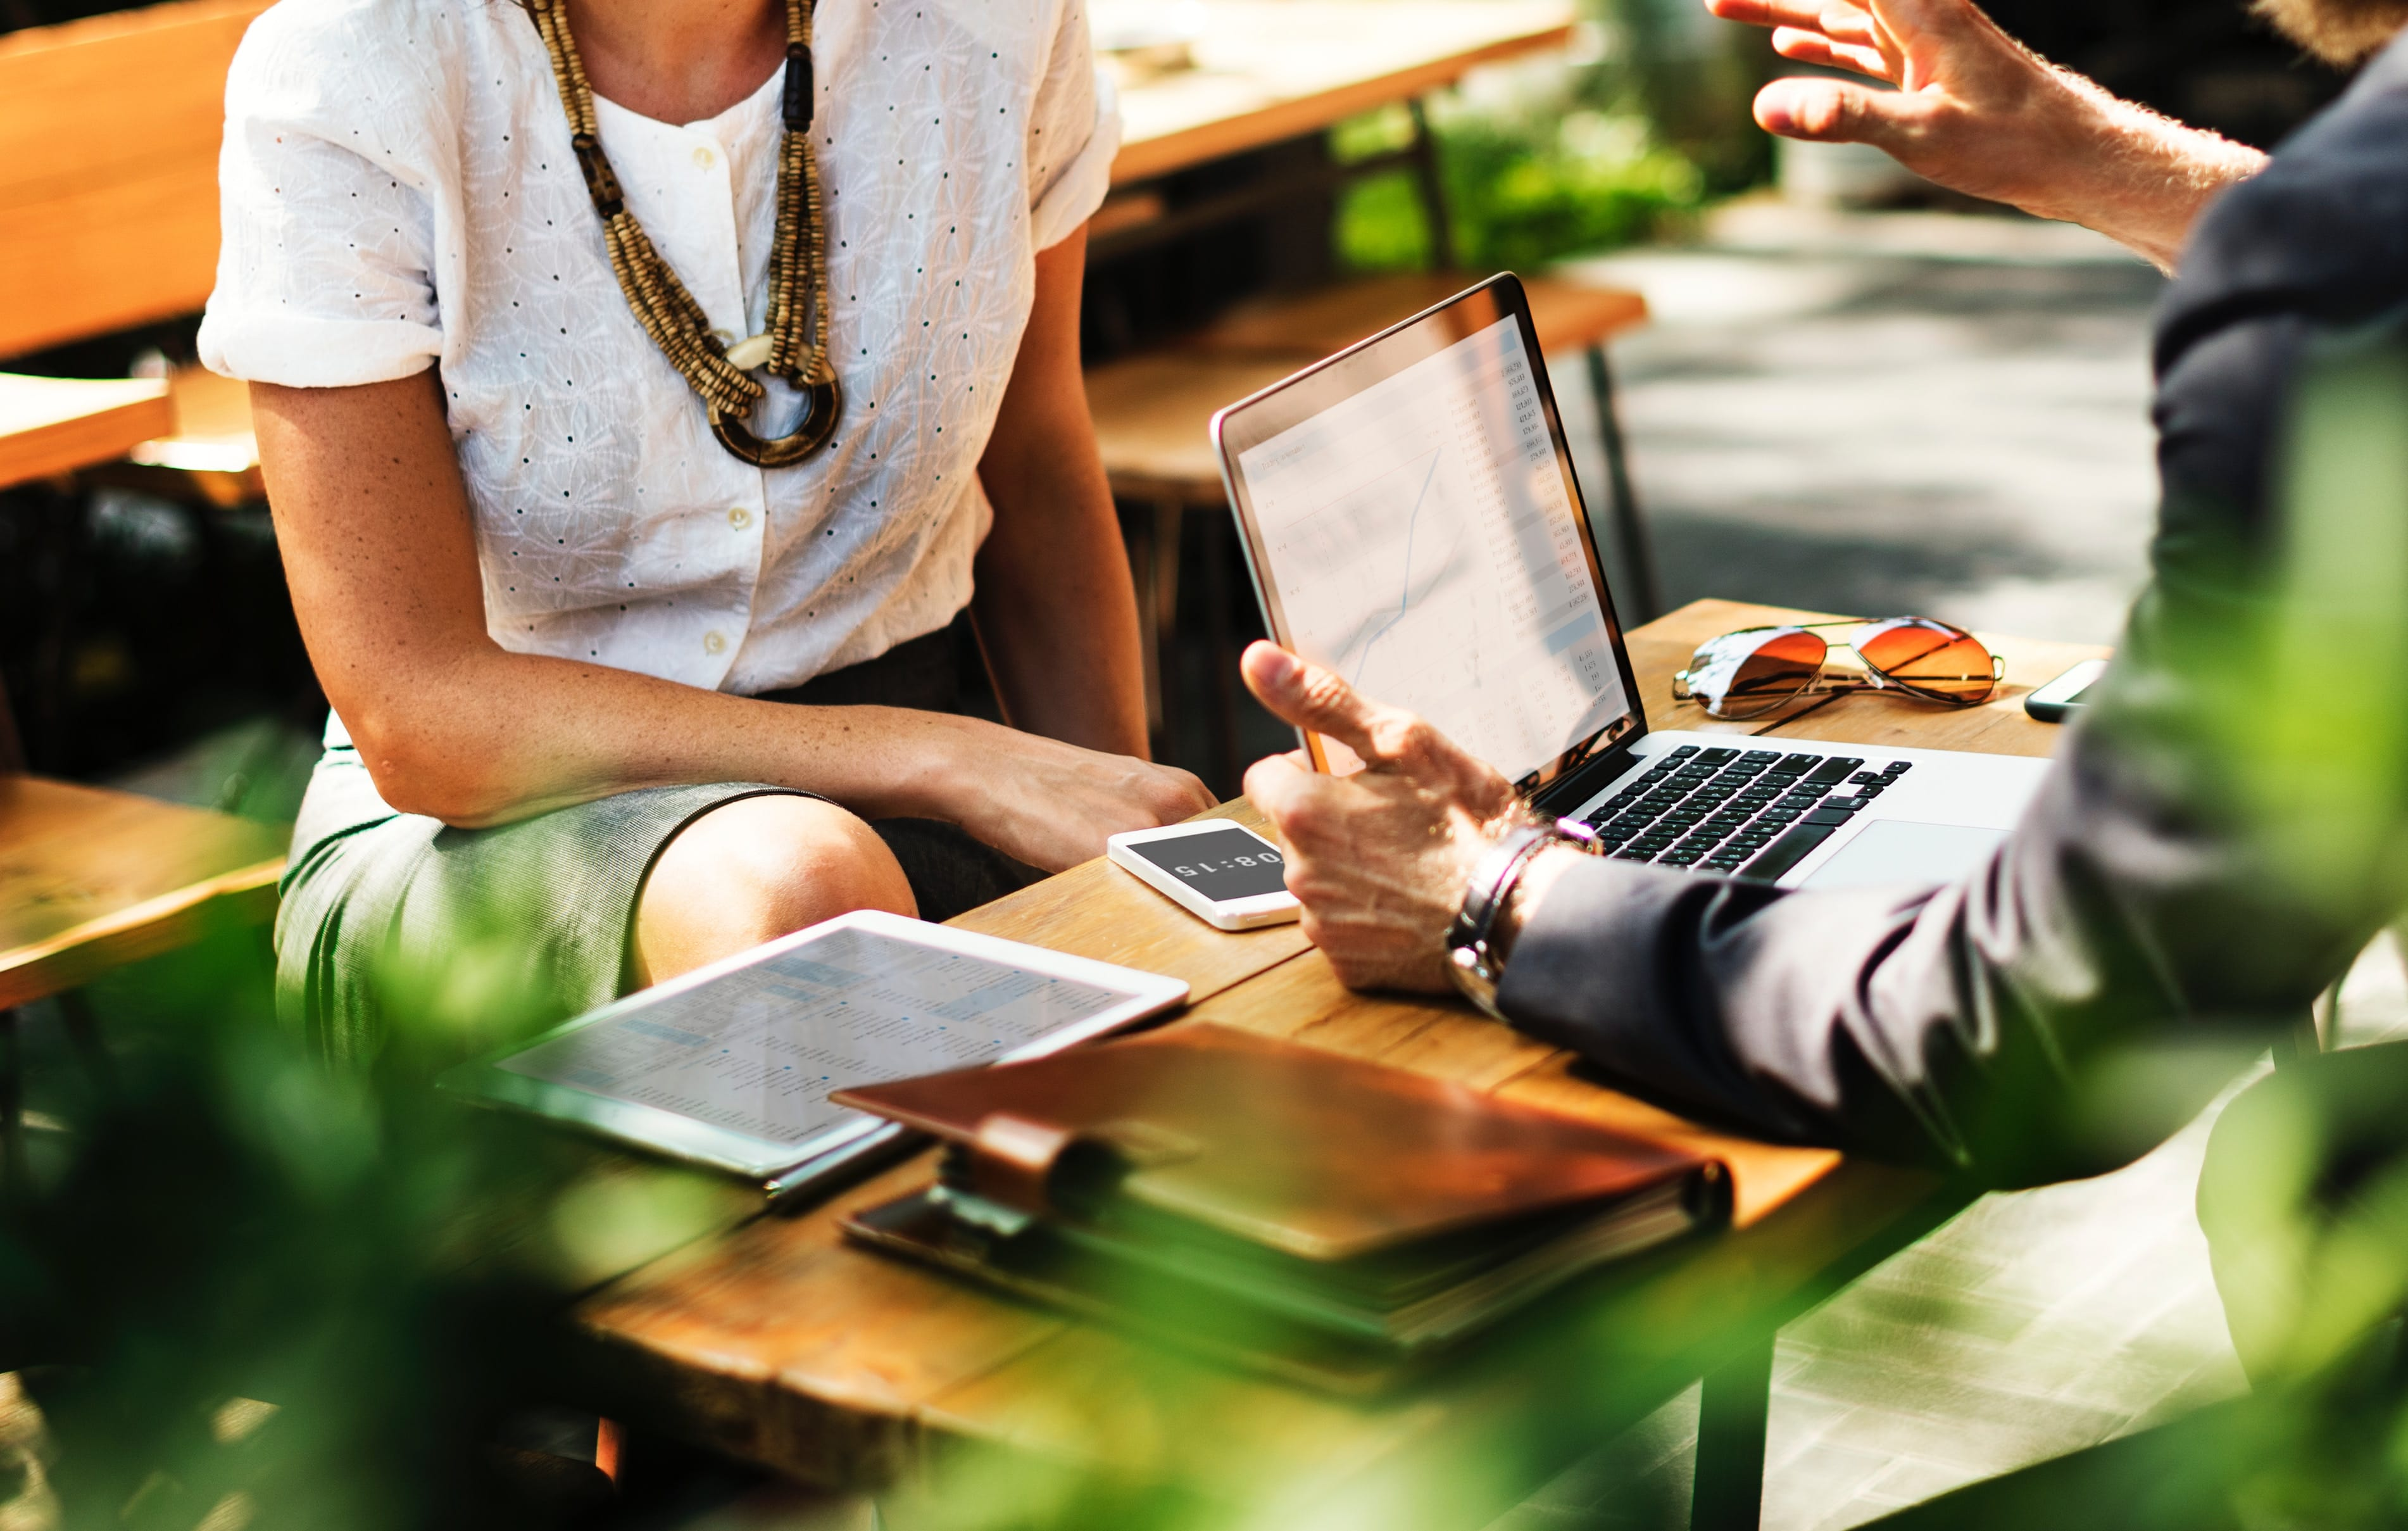 6 Quick Small Business Marketing Tips for 2019